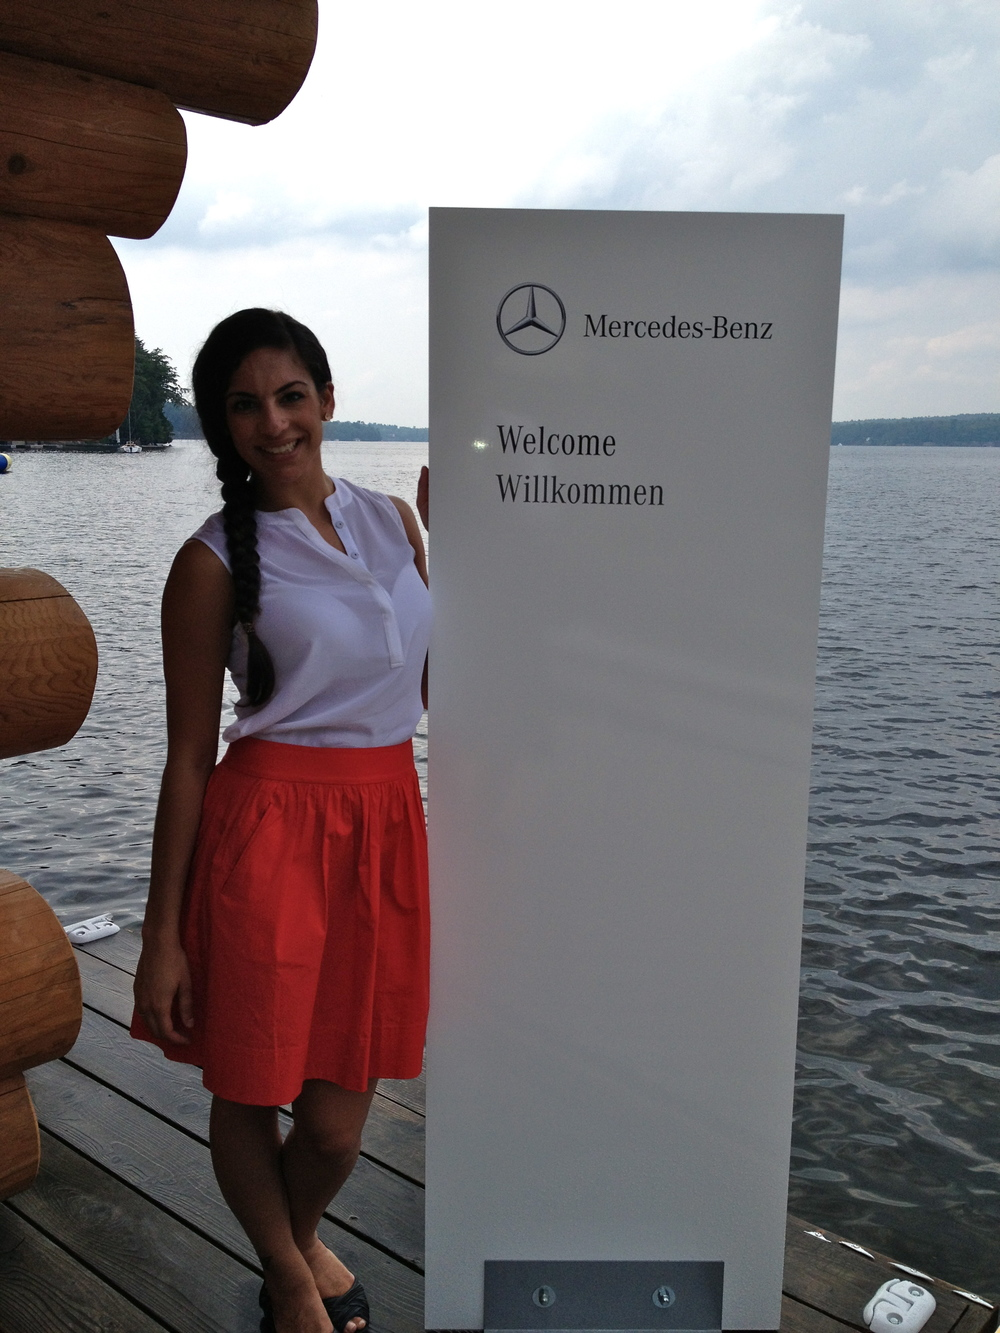 Mercedes Benz Event in Muskoka